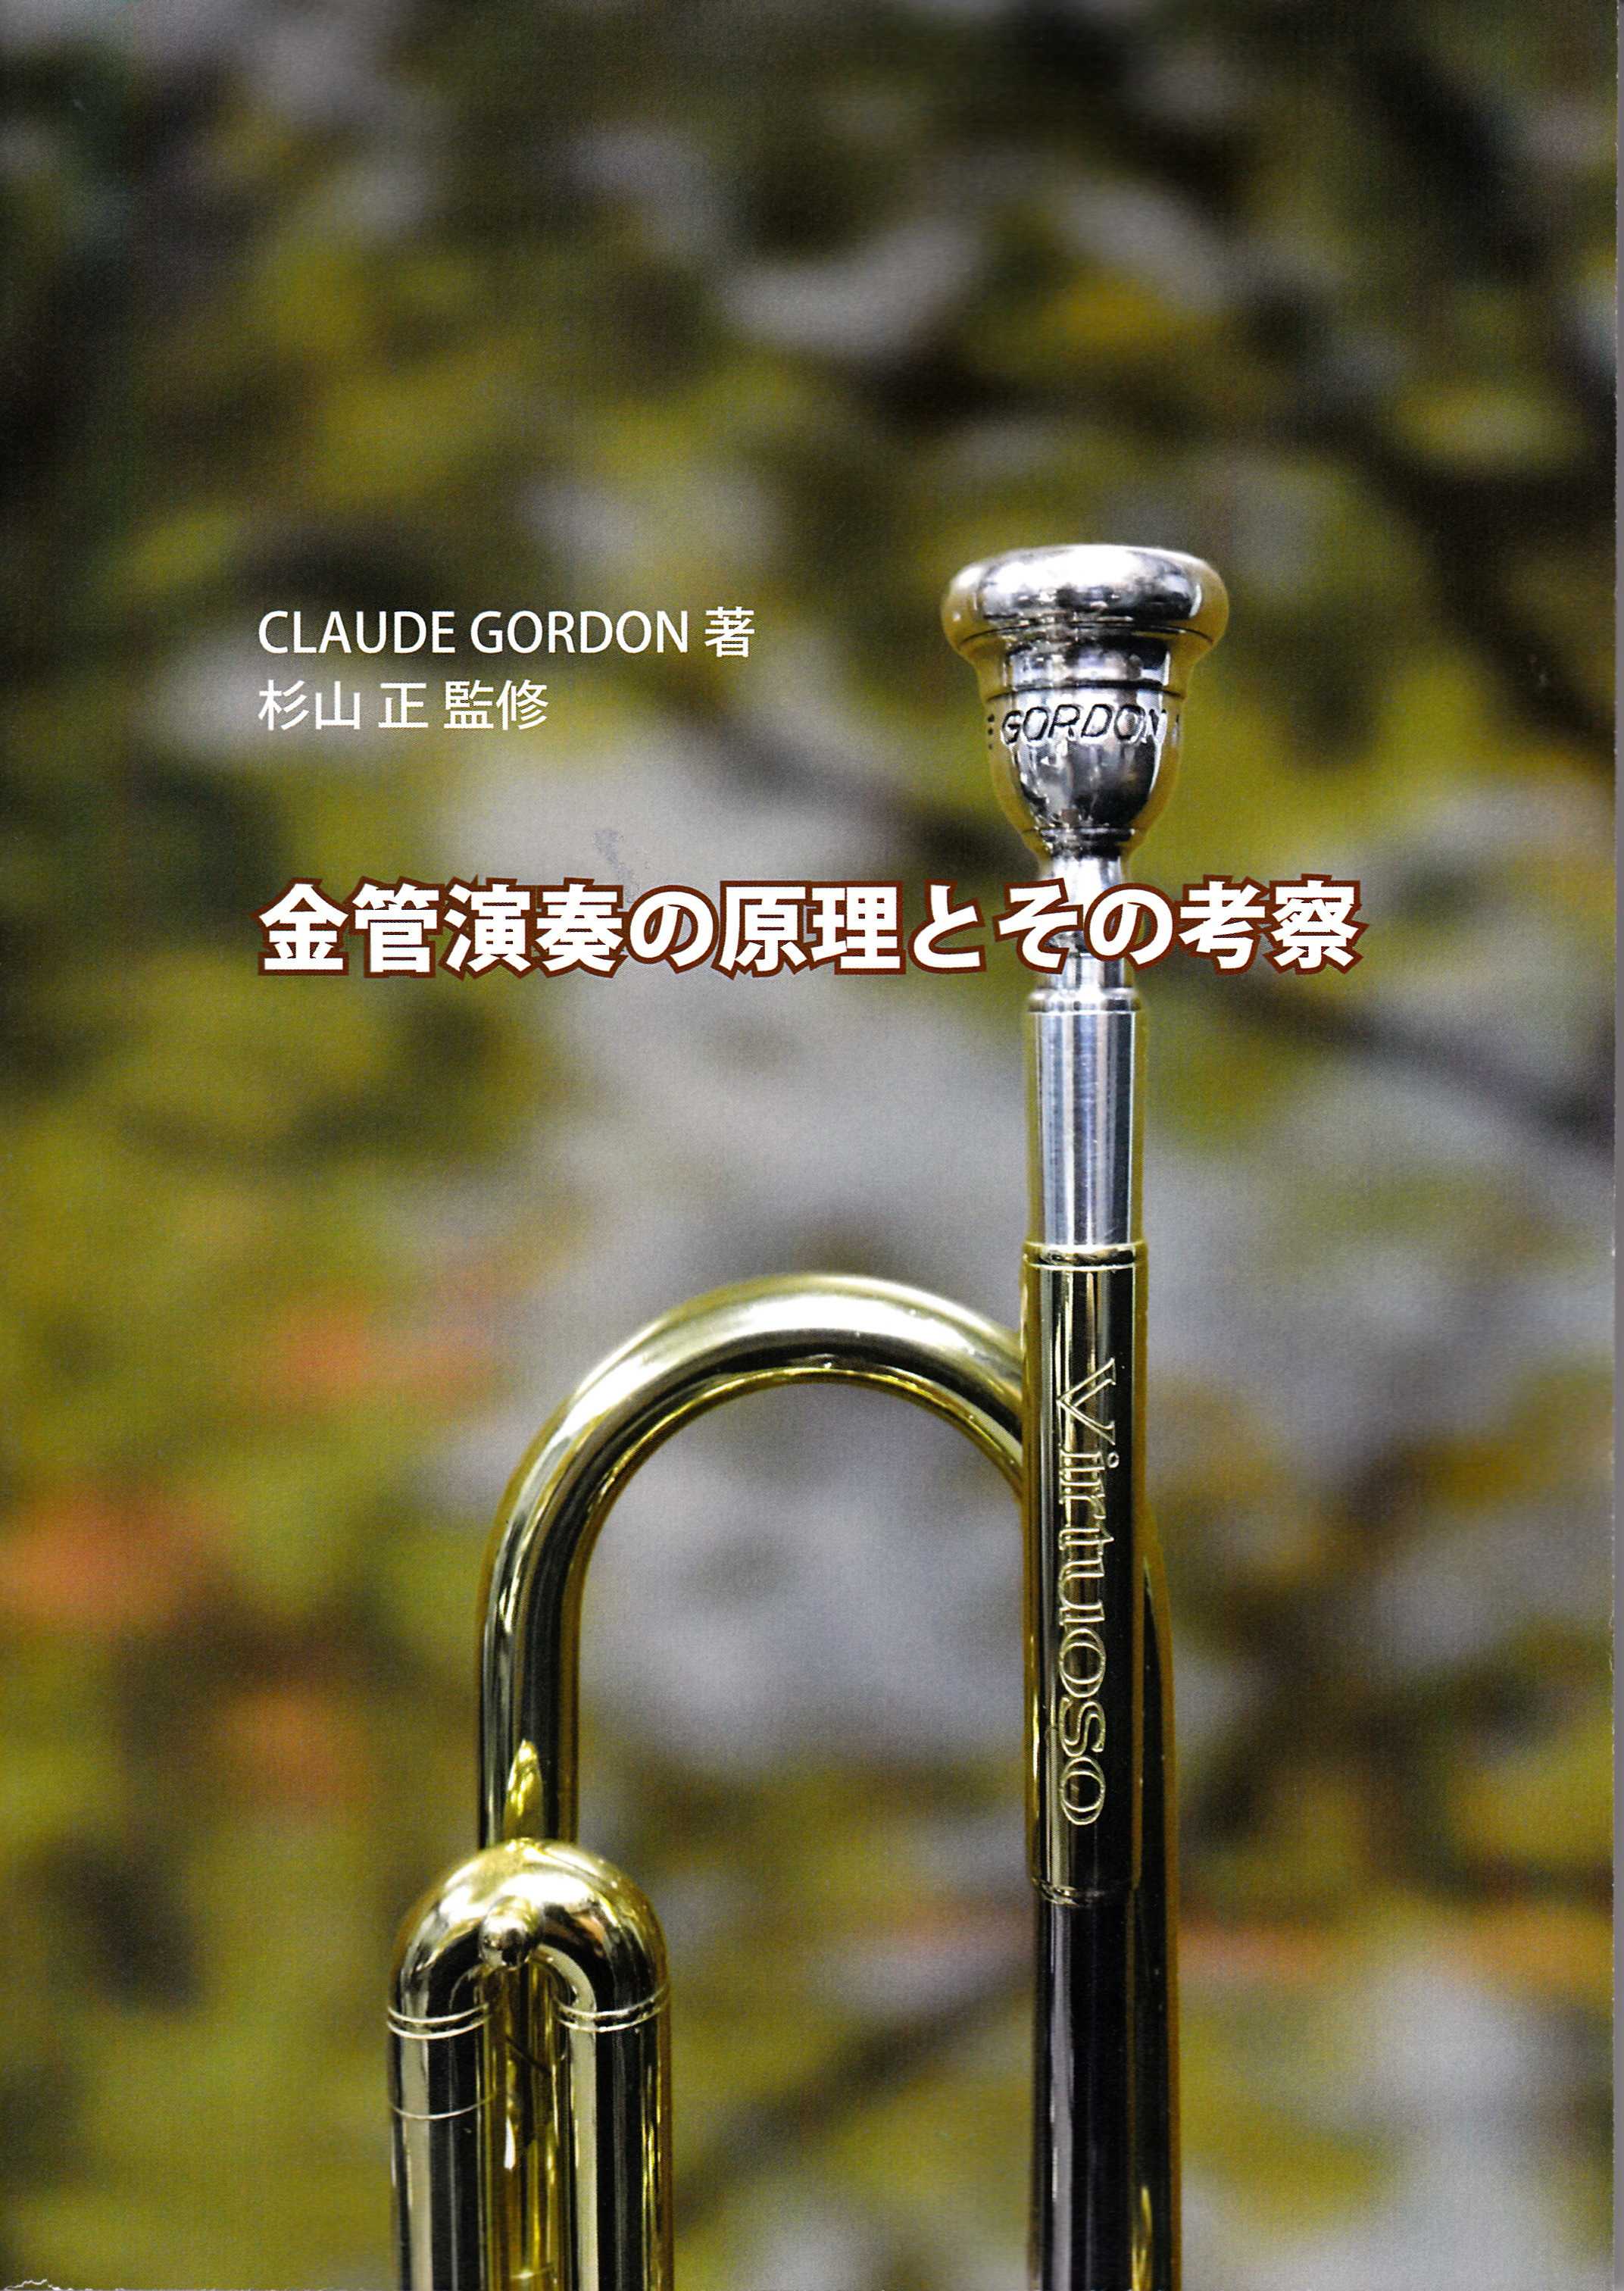 """Masashi Sugiyama- Claude Gordon -""""If there ever was a secret to brass playing, it is the tongue.Without a tongue, you could not play a brass instruments""""もし、金管演奏に秘密があるとしたら、それは舌である。舌なしには金管楽器を演奏することは出来ない。"""